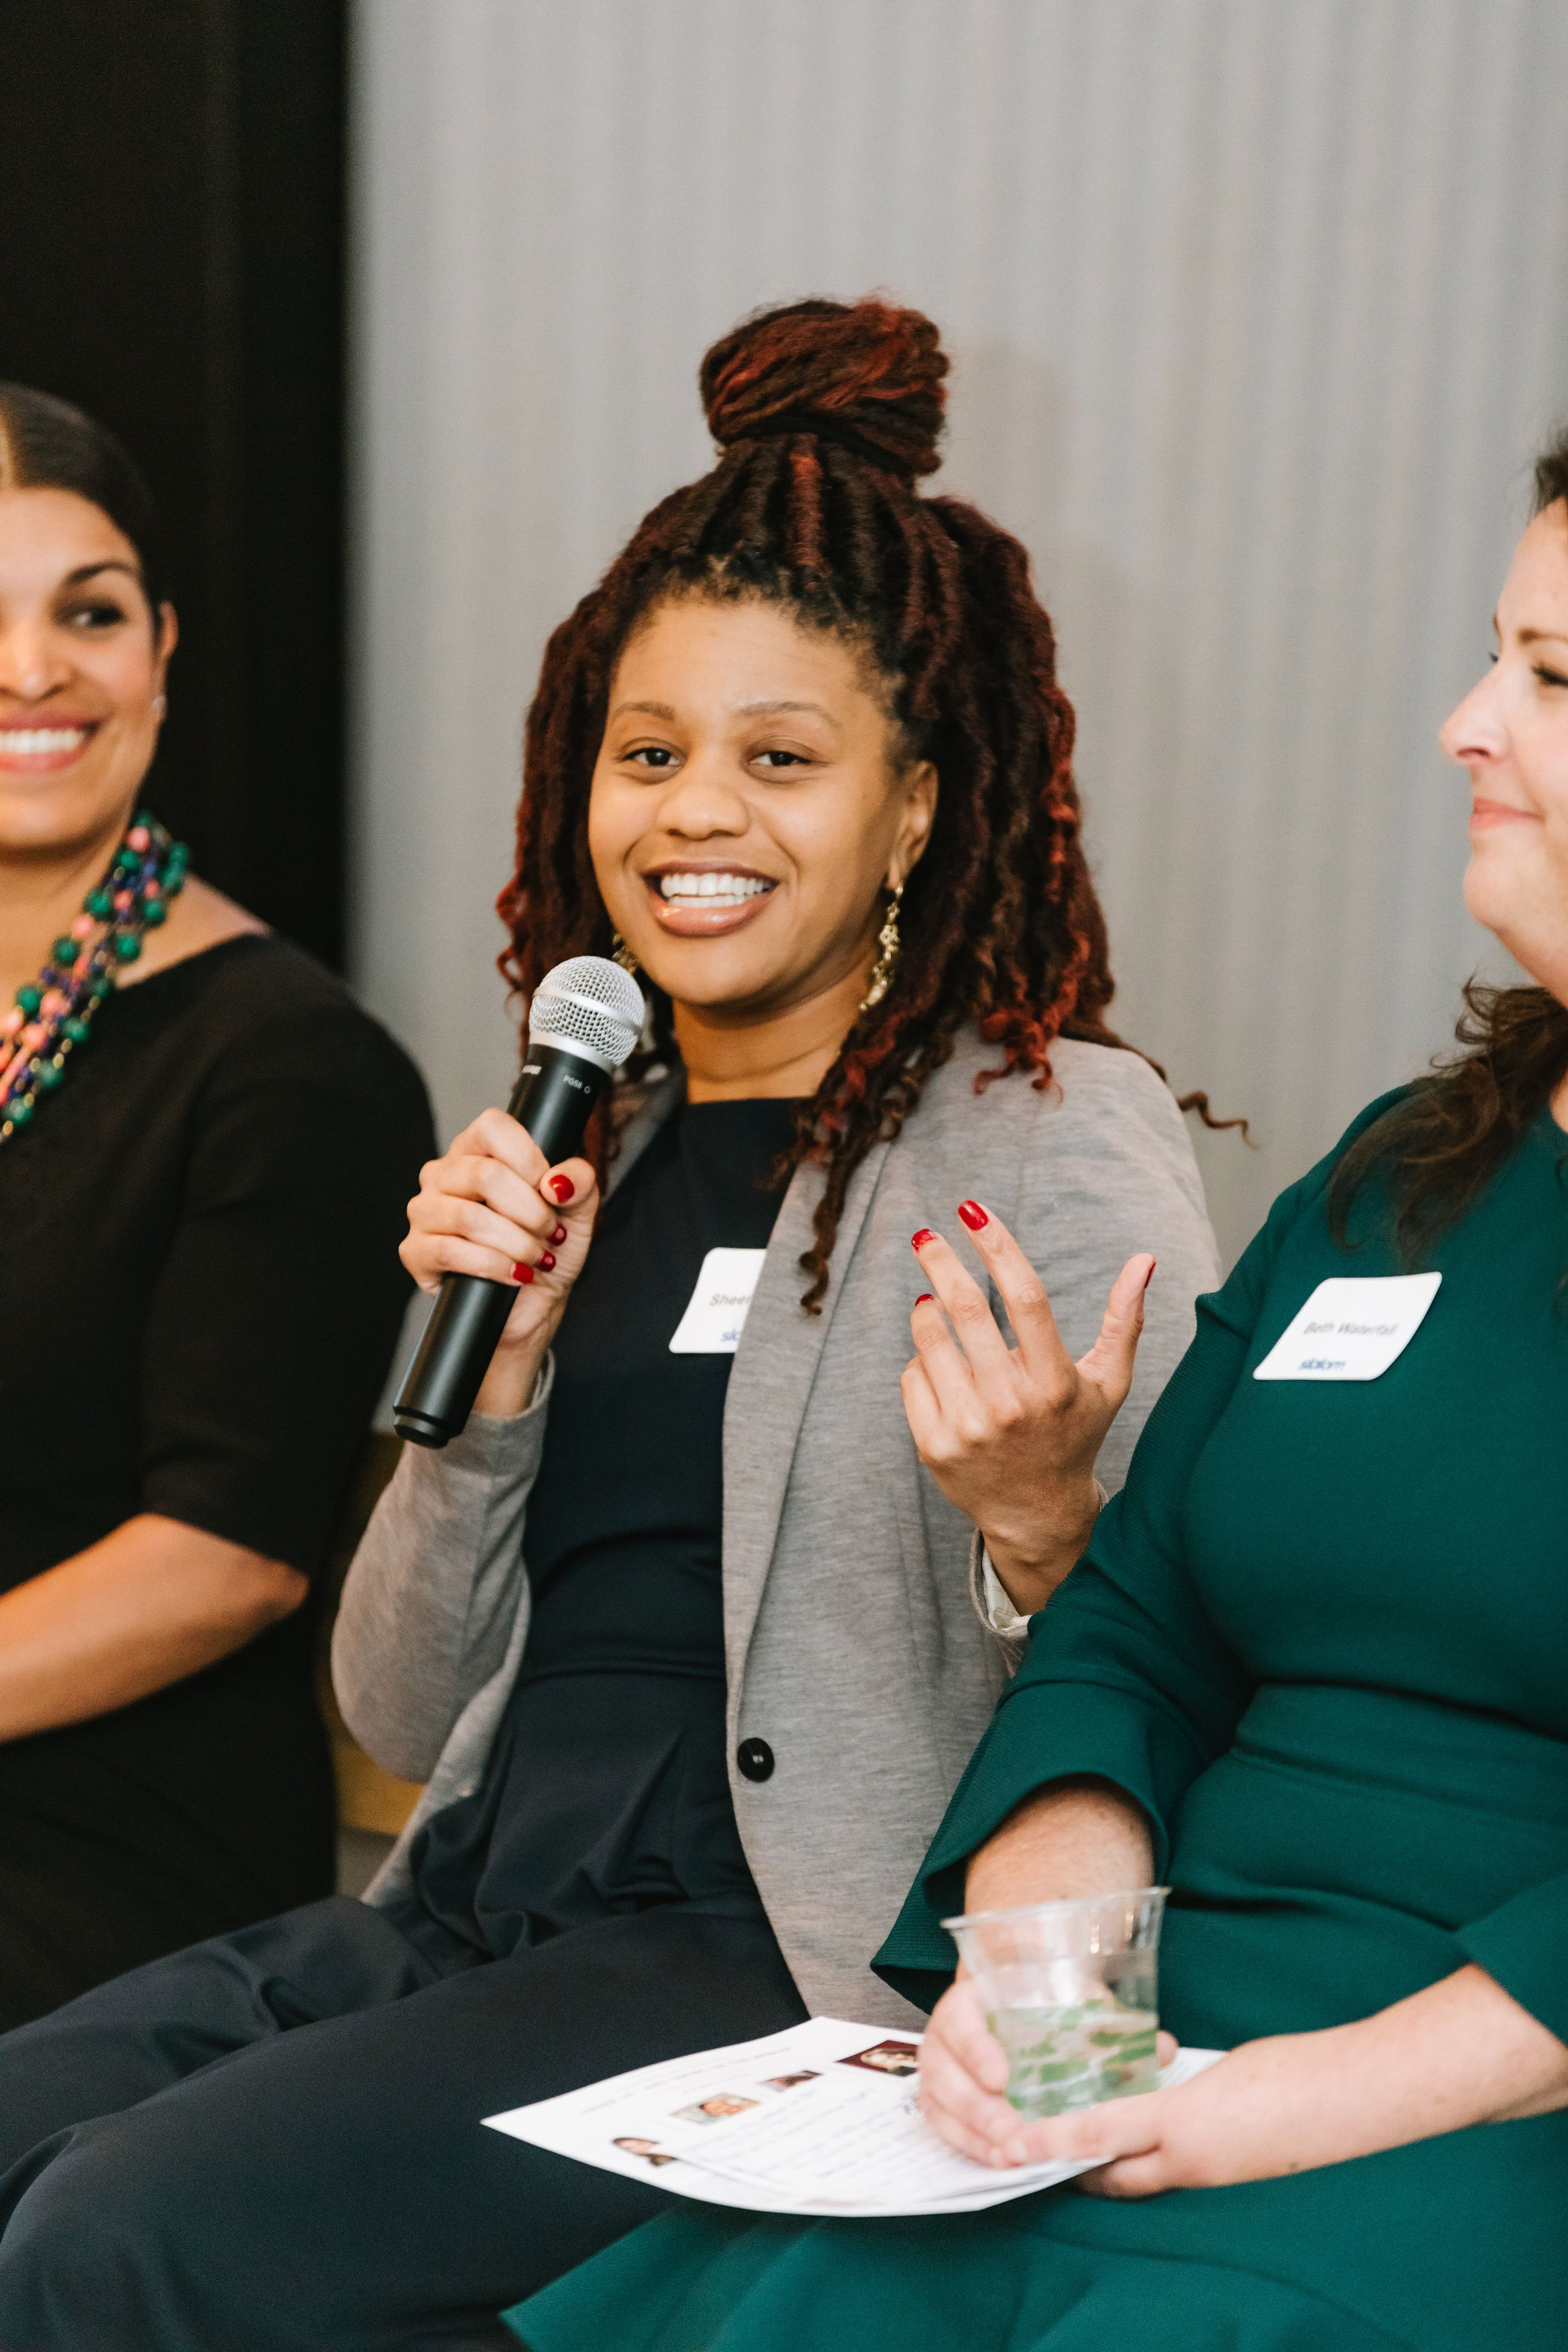 Who is Sheena Collier? - A super-connector, organizer, and Black woman who moved to the Boston area for graduate school in 2004. I didn't know a single person and didn't have a network, so I built one. I got to know Boston by starting and joining different organizations, in addition to, throwing events that connected me to lots of different worlds - education, politics, arts, community organizing, business. I made connections that changed my life and learned techniques to navigate (and eventually enjoy) the city. This helped me grow an extensive network that I now can leverage to benefit others.I love creating spaces for people to connect. I experience joy when I am able to introduce people to each other, valuable information, or new experiences. After being here for almost 15 years, I started designing events & workshops for my fellow transplants, who are constantly sharing with me their struggles with building a community that keeps them here; particularly people of color who don't find Boston welcoming or easy to navigate. I also hear from Boston natives that they don't have spaces to connect with others across neighborhoods, sectors, & backgrounds and they, too, are looking for community & experiences that help them enjoy Boston.Through The Collier Connection, I will help you find your tribe, activate your network, navigate the city, and have fun!